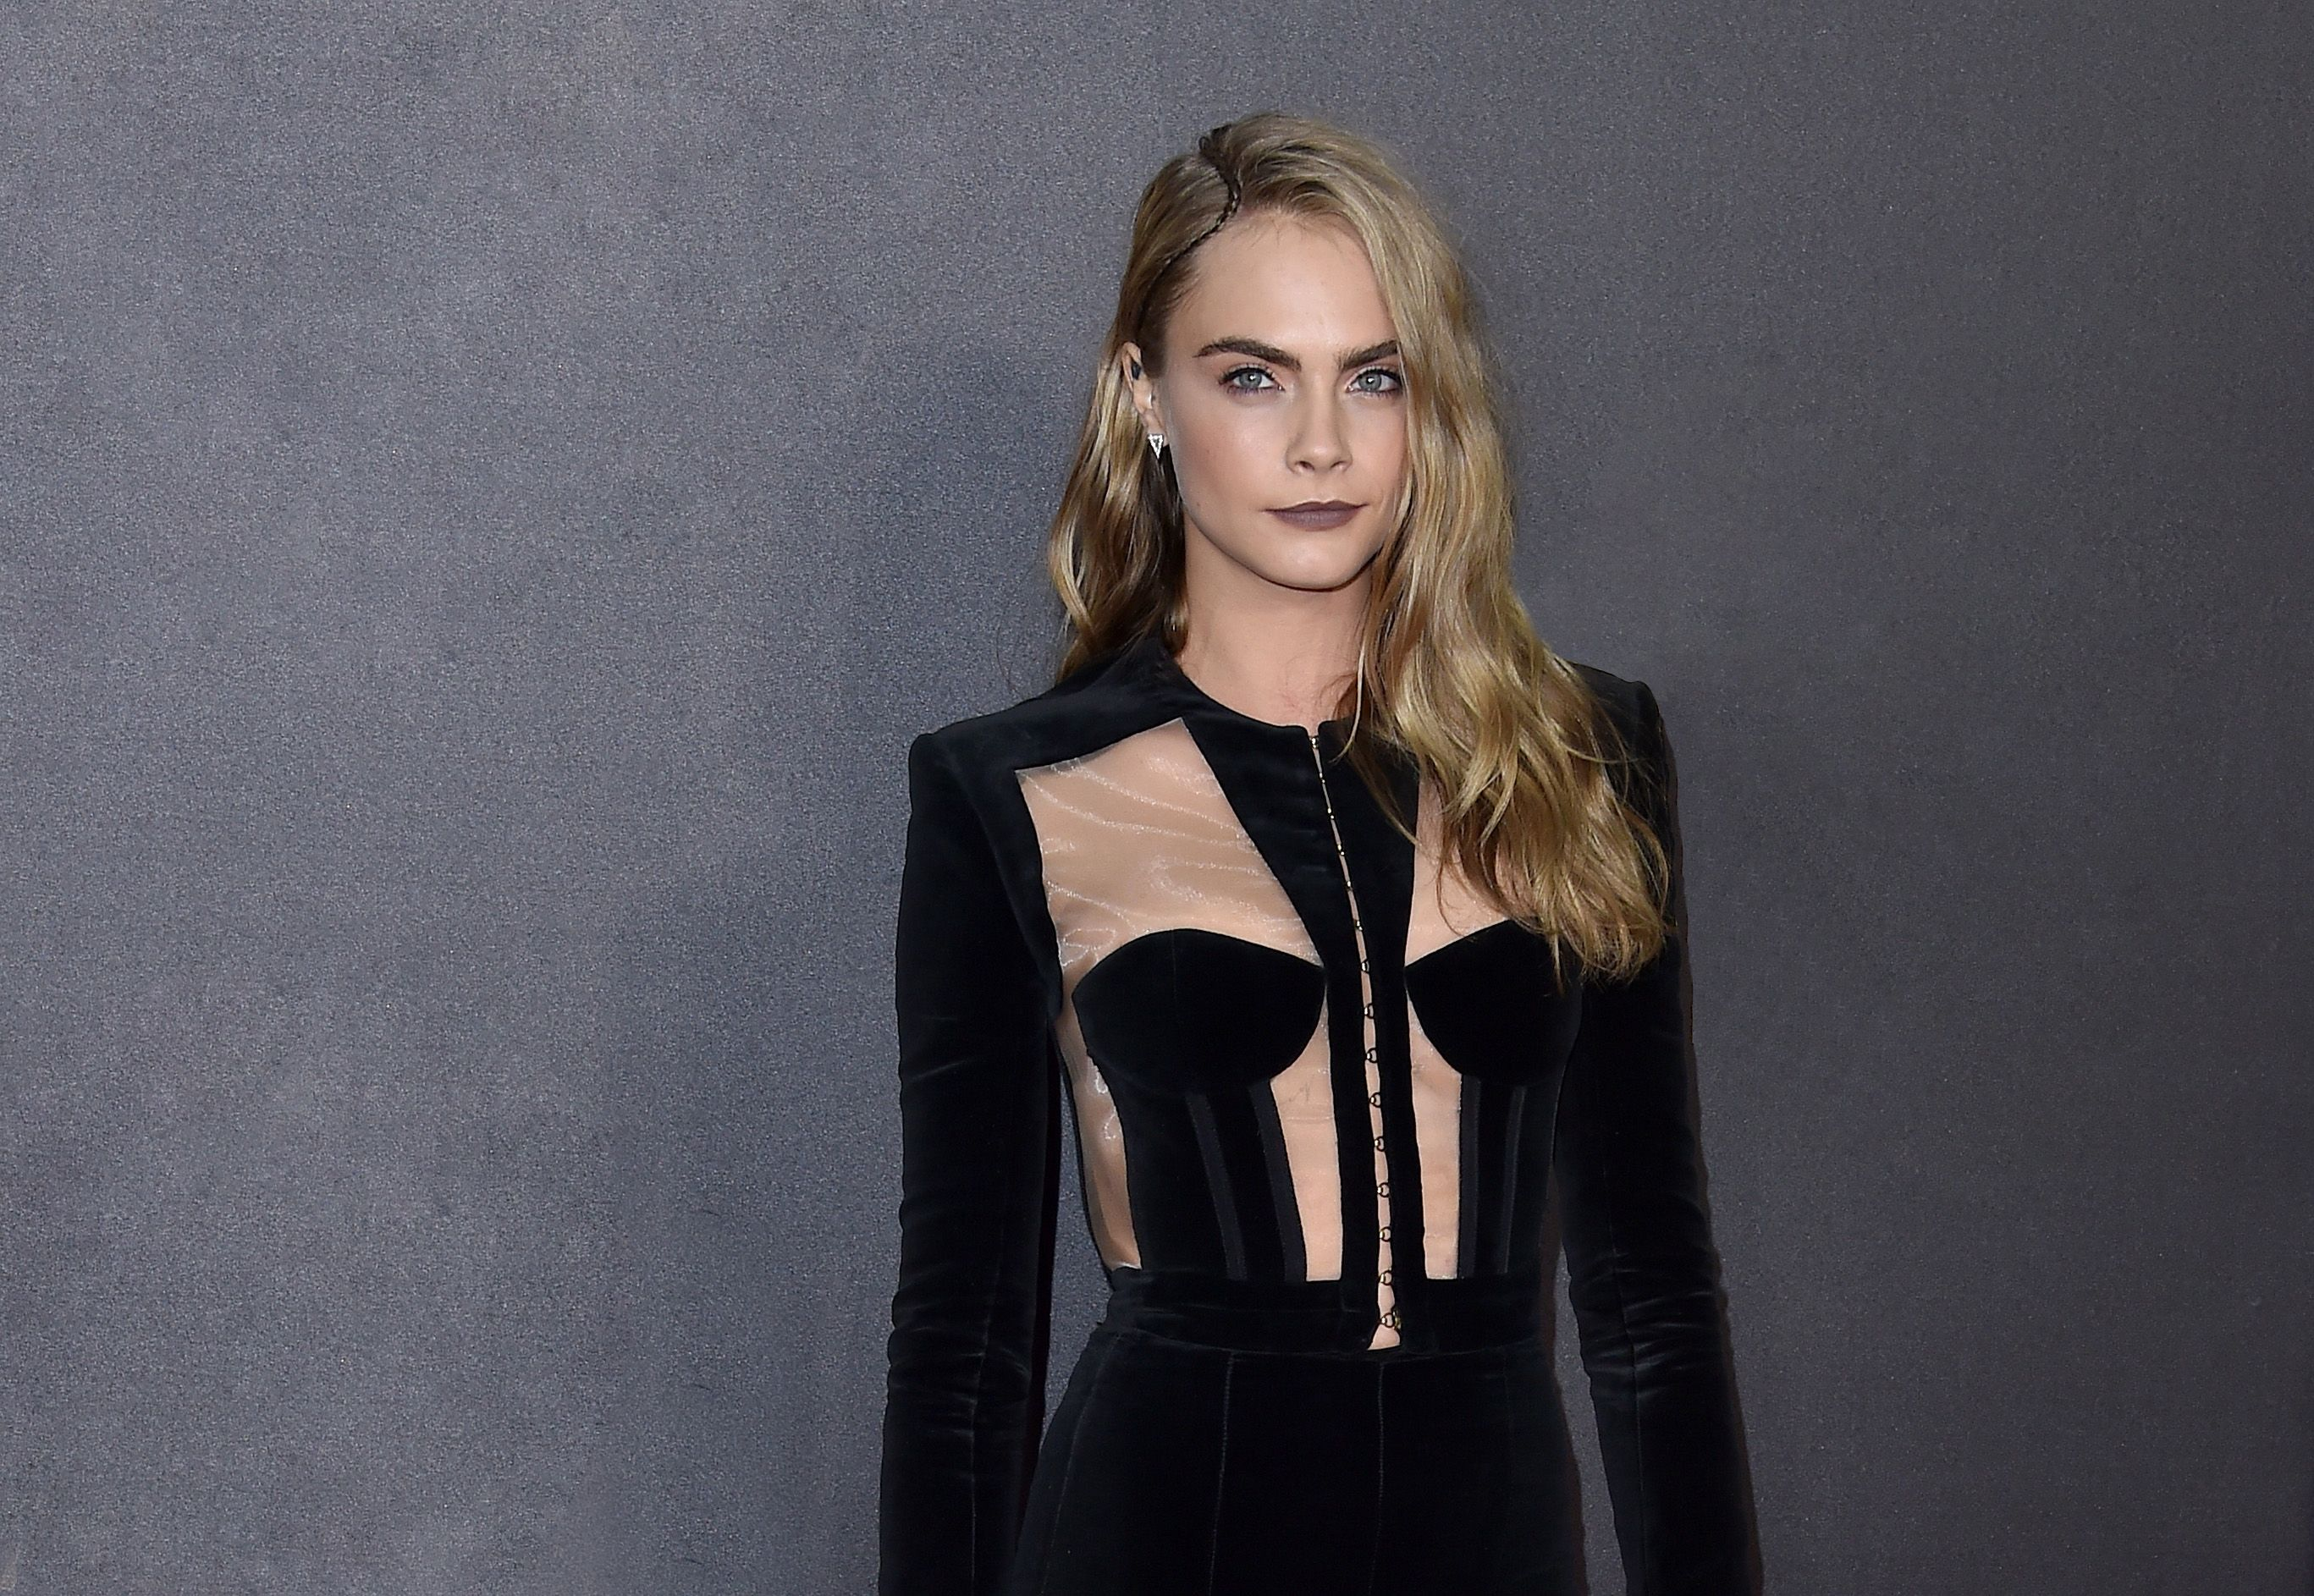 Cara Delevingne joins Kate Moss and Georgia Jagger as the new face of Rimmel recommend